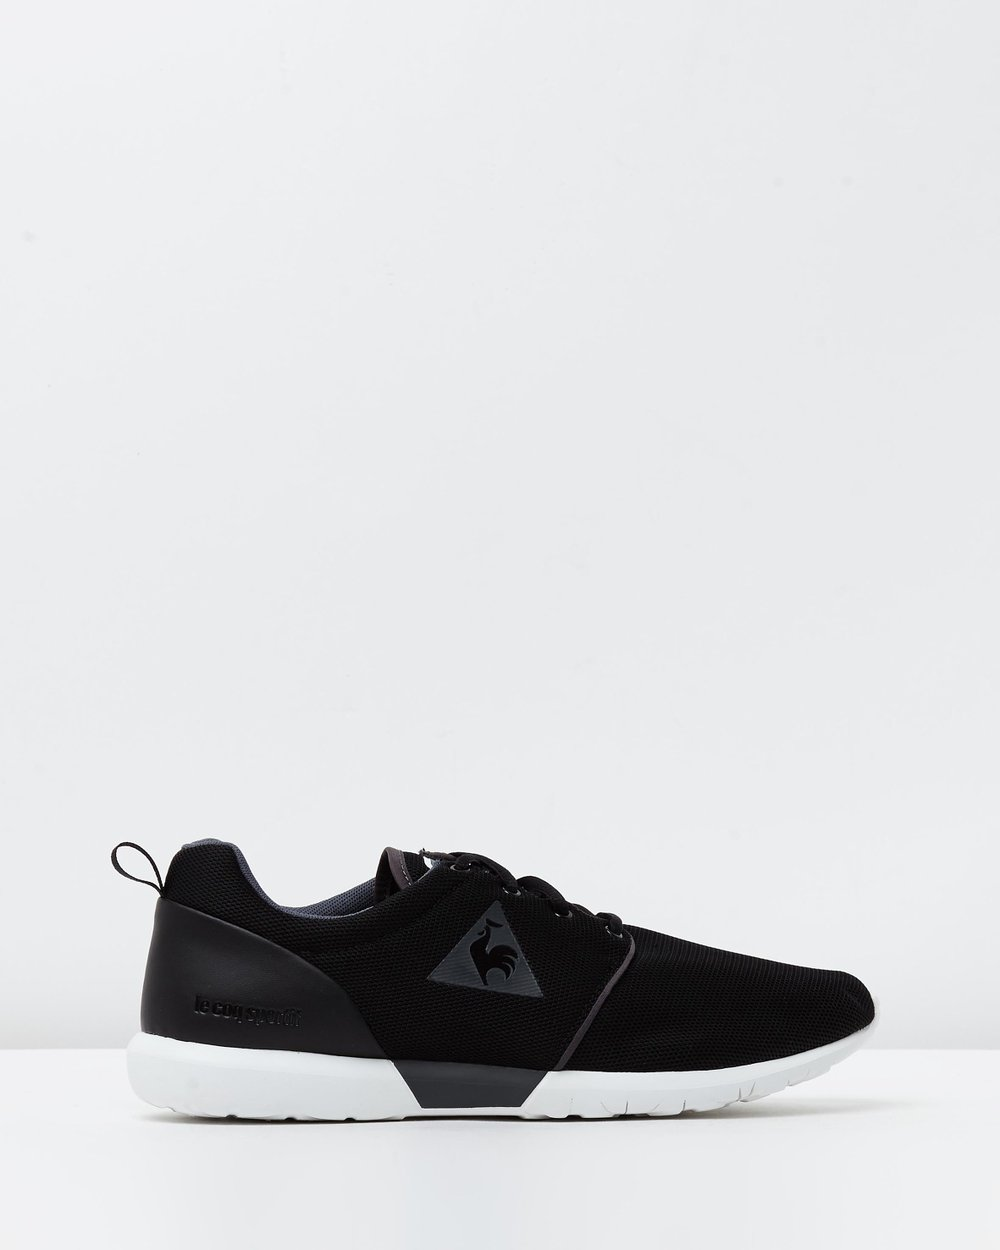 c5f2099695fe ... Dynacomf Text by Le Coq Sportif Online